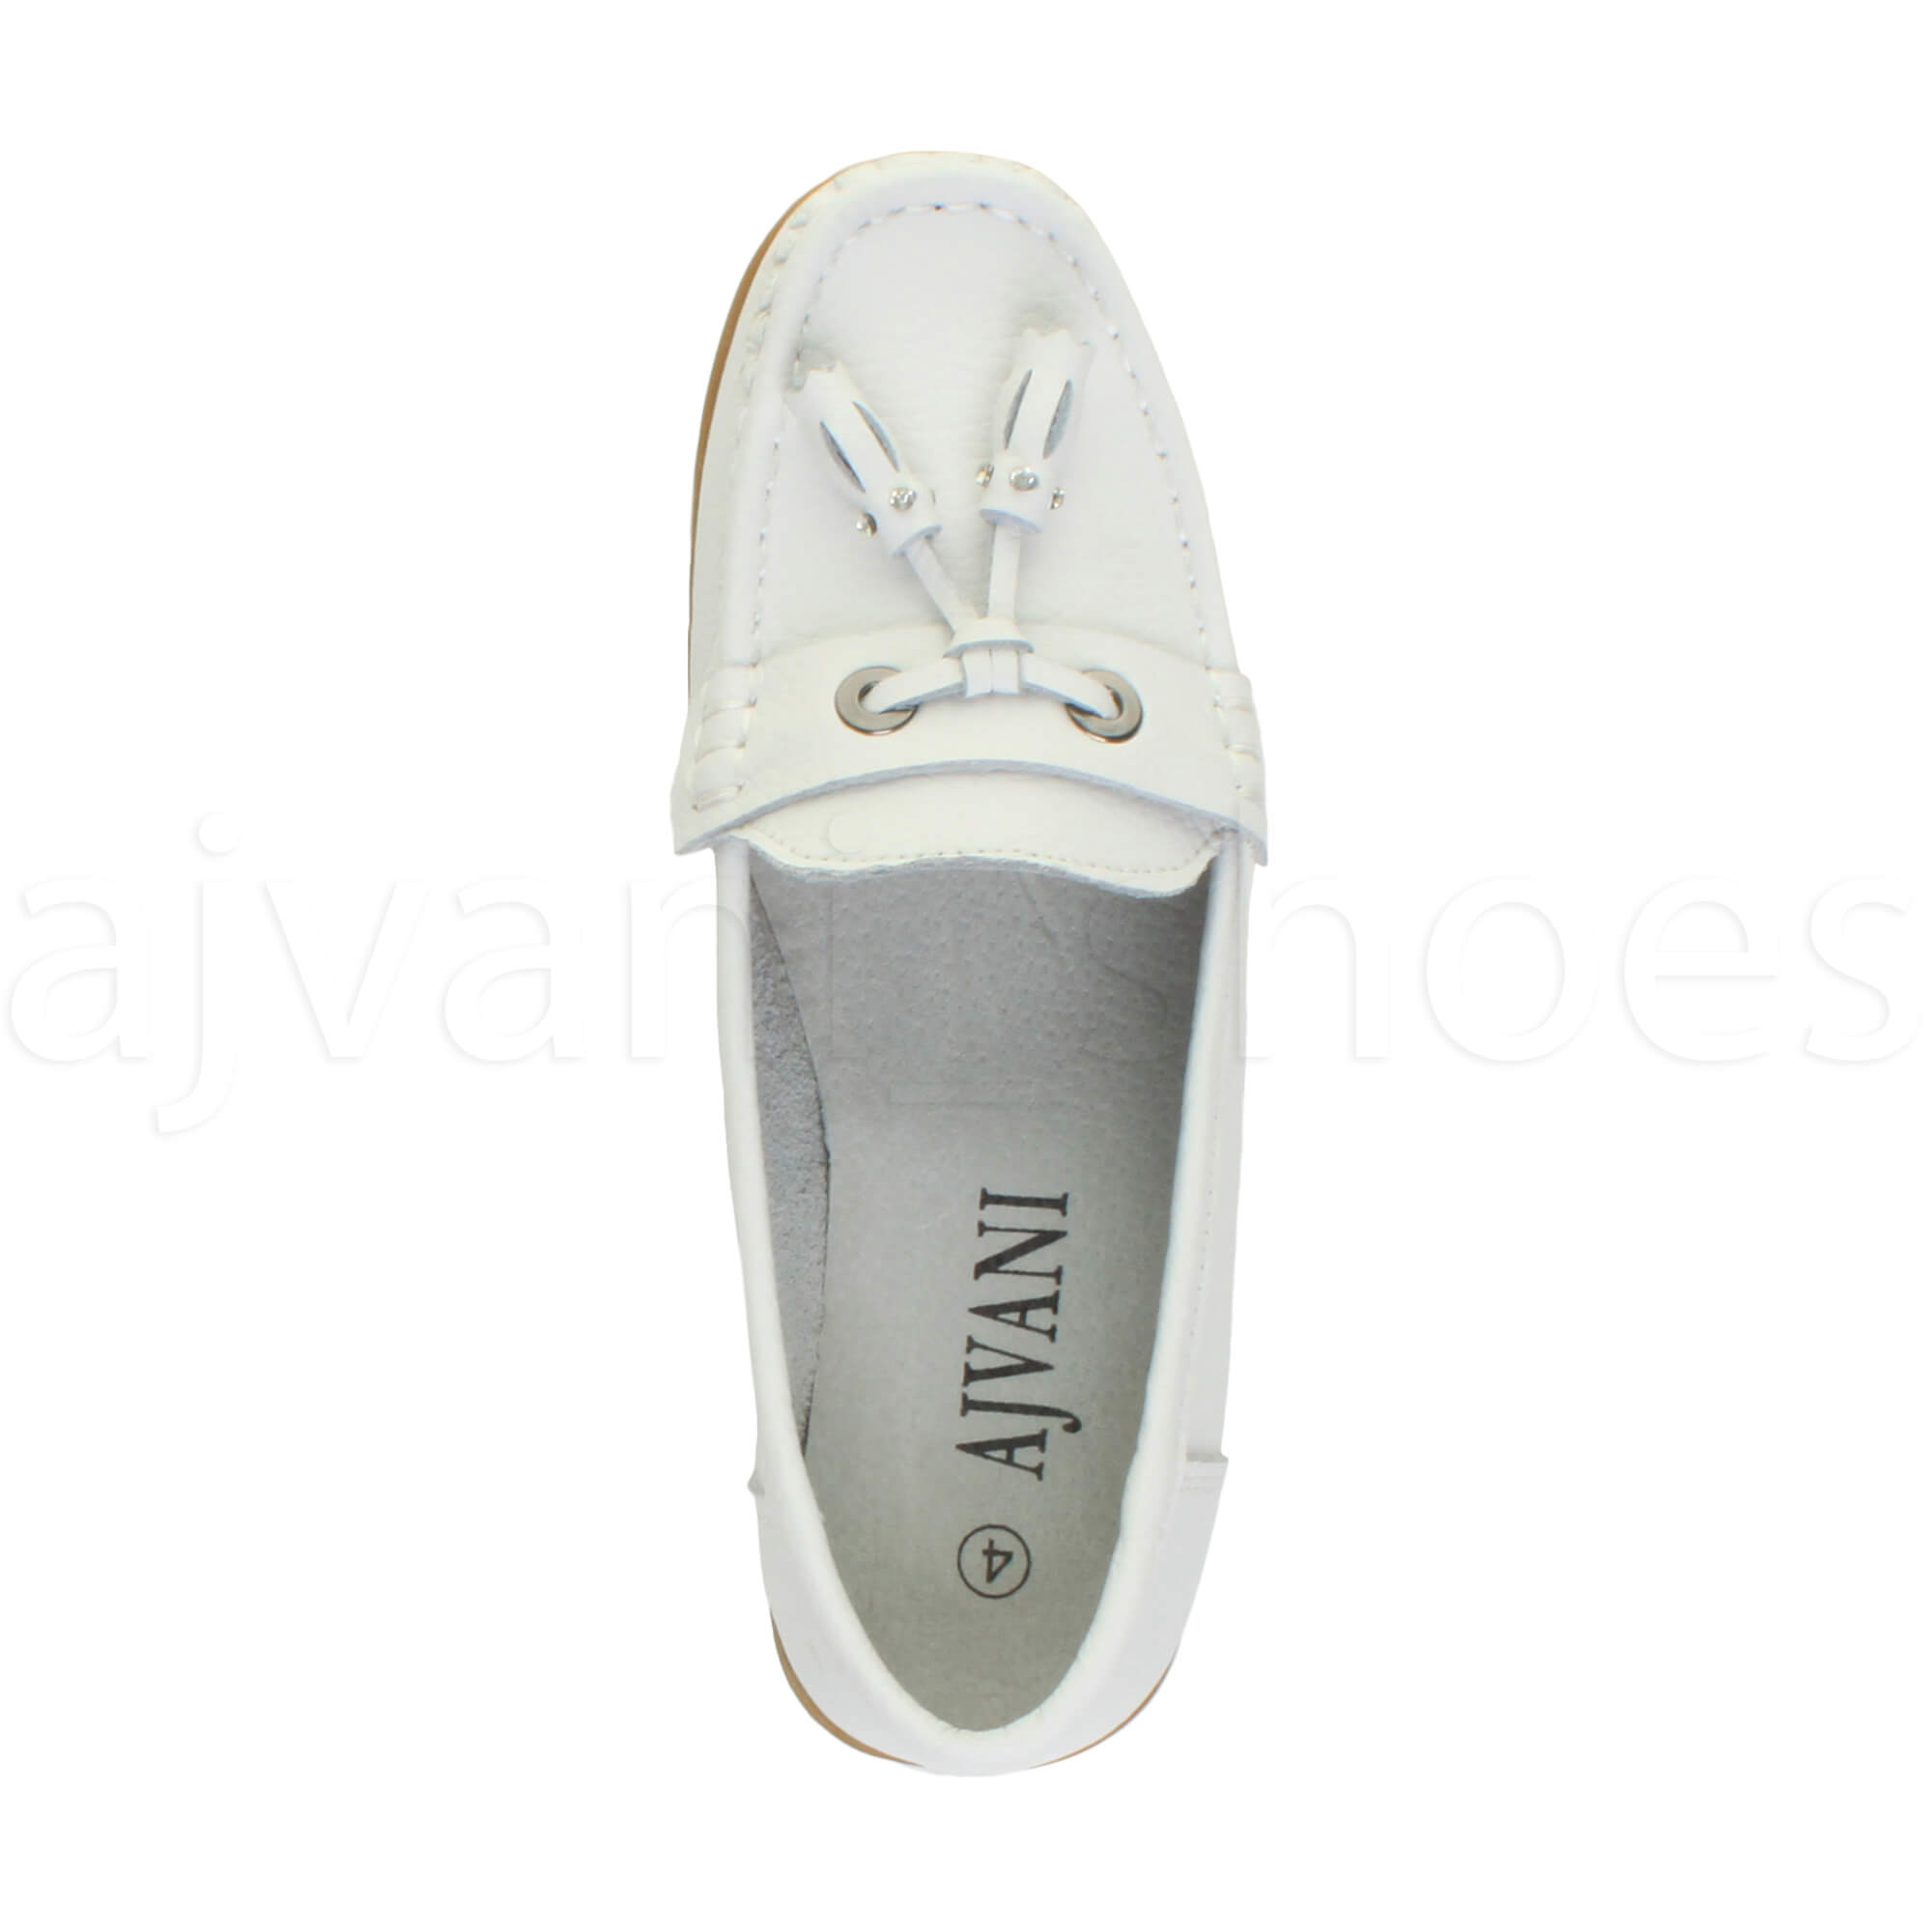 WOMENS-LADIES-LOW-HEEL-WEDGE-LEATHER-TASSEL-LOAFERS-COMFORT-MOCCASINS-SHOES-SIZE thumbnail 48